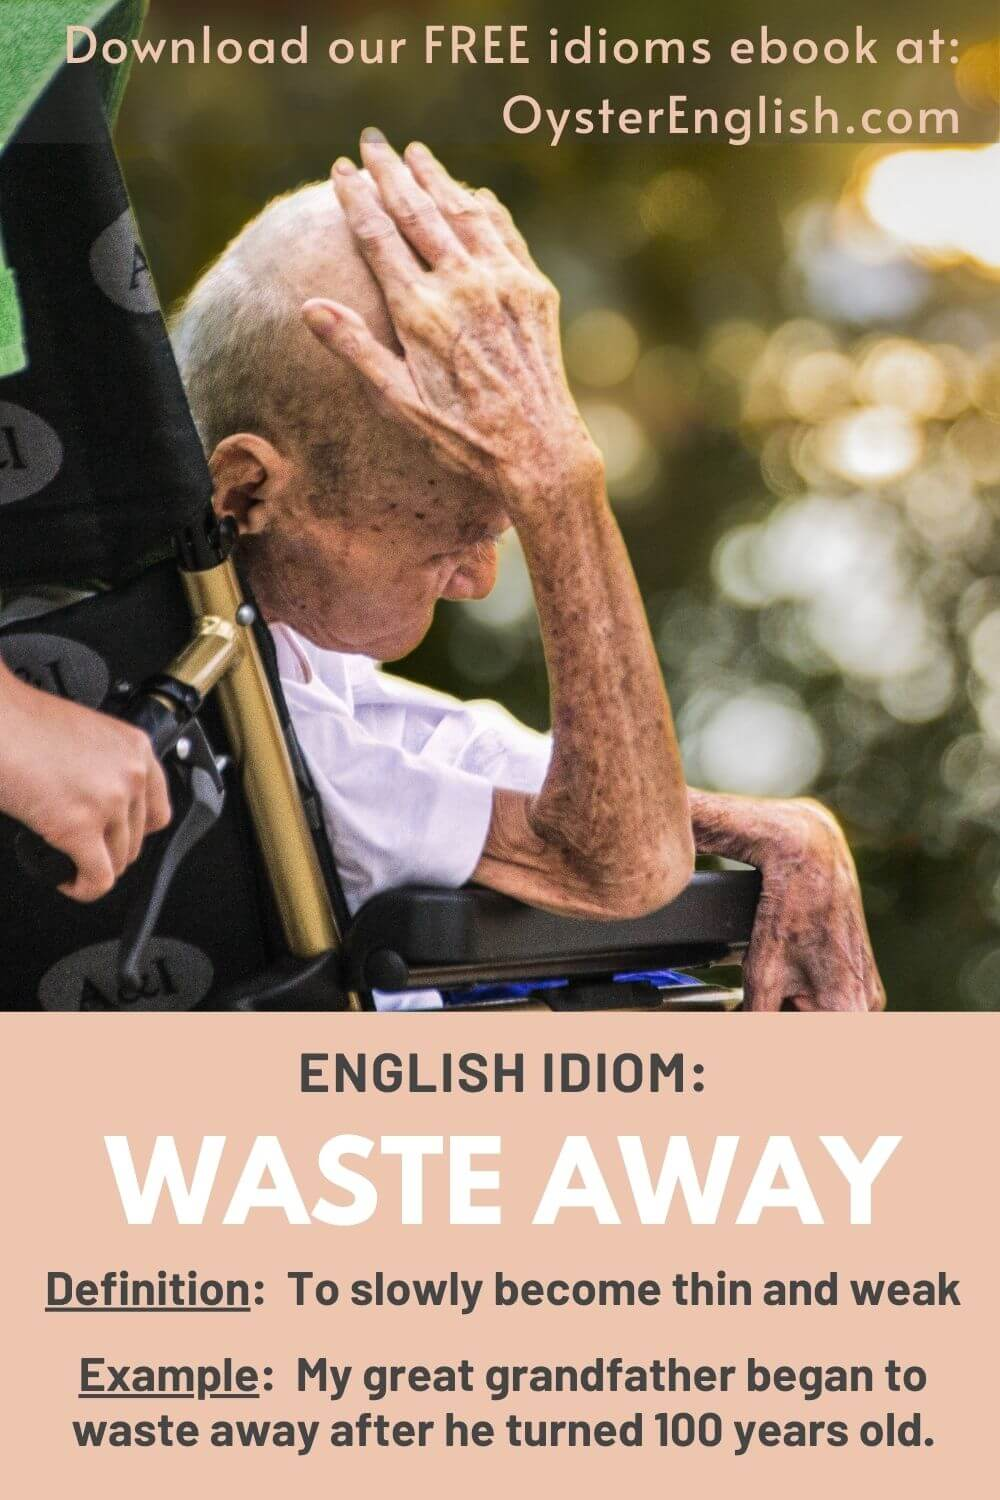 A very thin elderly man in a wheelchair: My great grandfather began to waste away after he turned 100 years old.